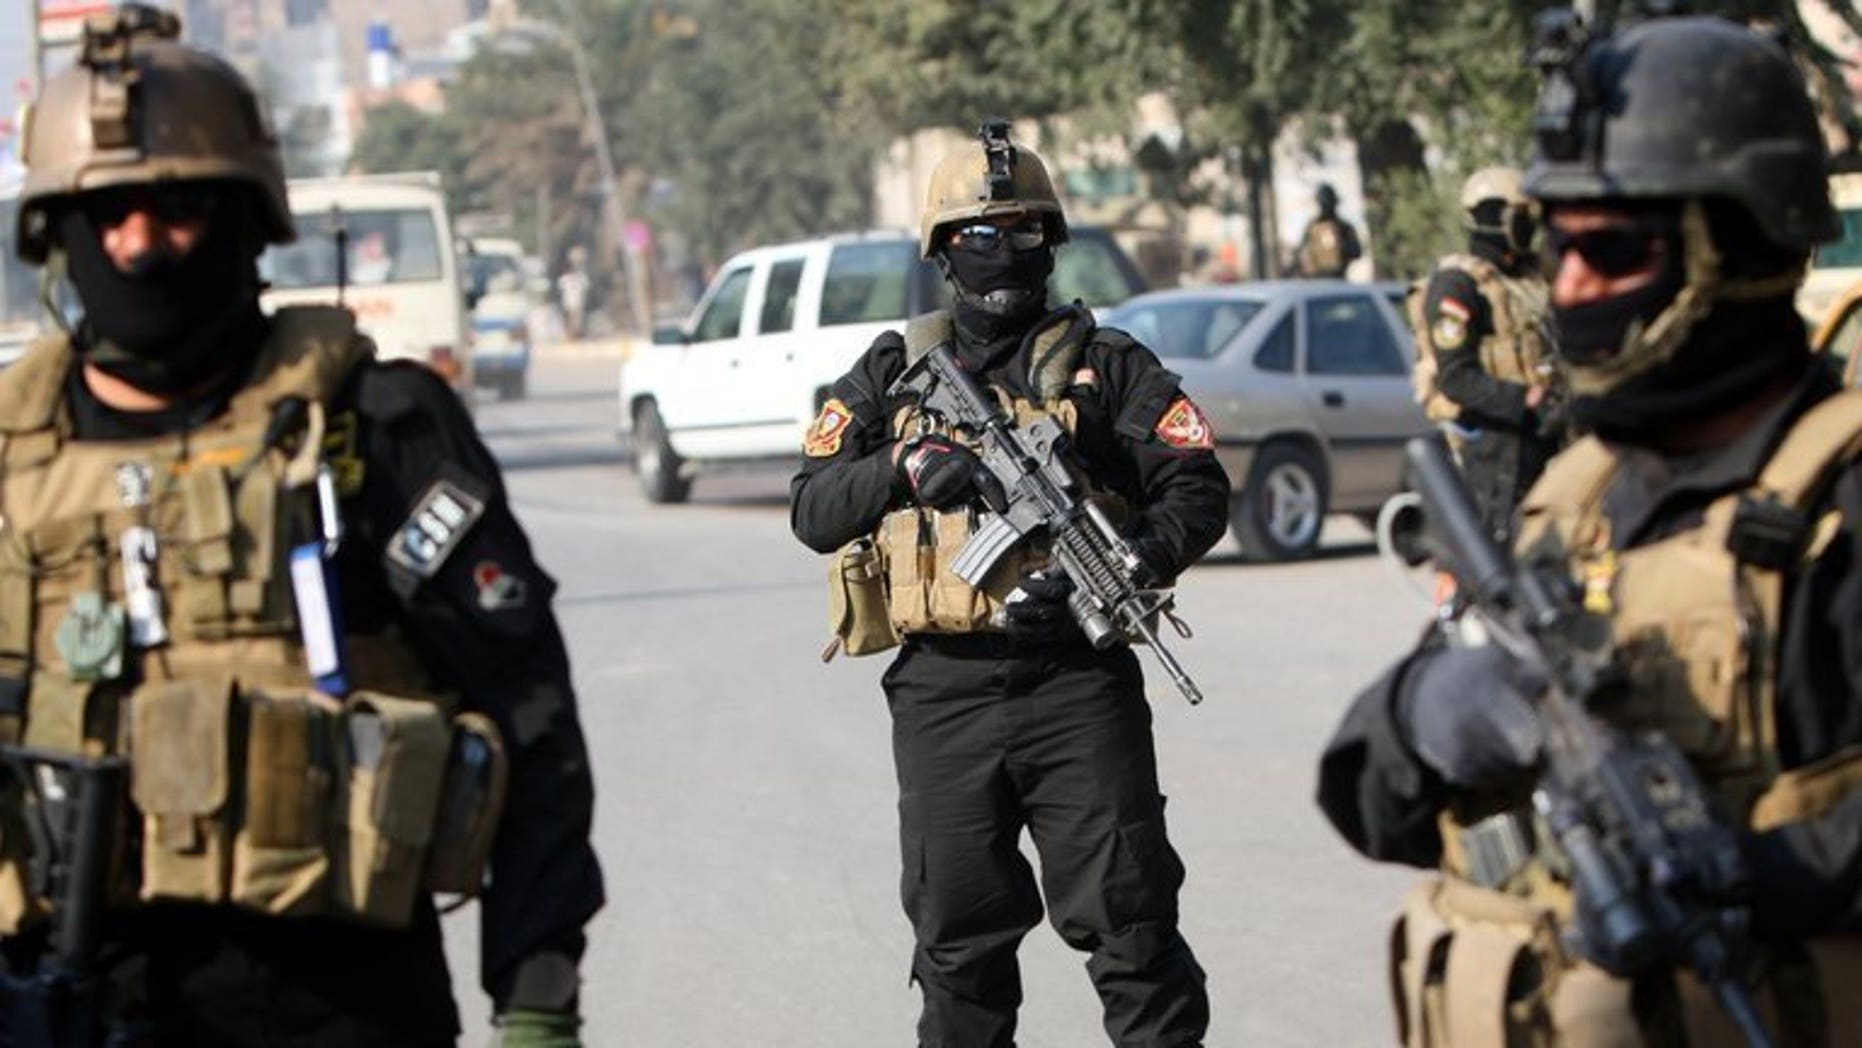 Iraqi anti-terror police guard a checkpoint in Baghdad, on January 6, 2011. At least six people have been killed in separate attacks north of Baghdad, in the latest in a spate of deadly violence in Iraq that has stoked fears of a return to full-blown sectarian war.